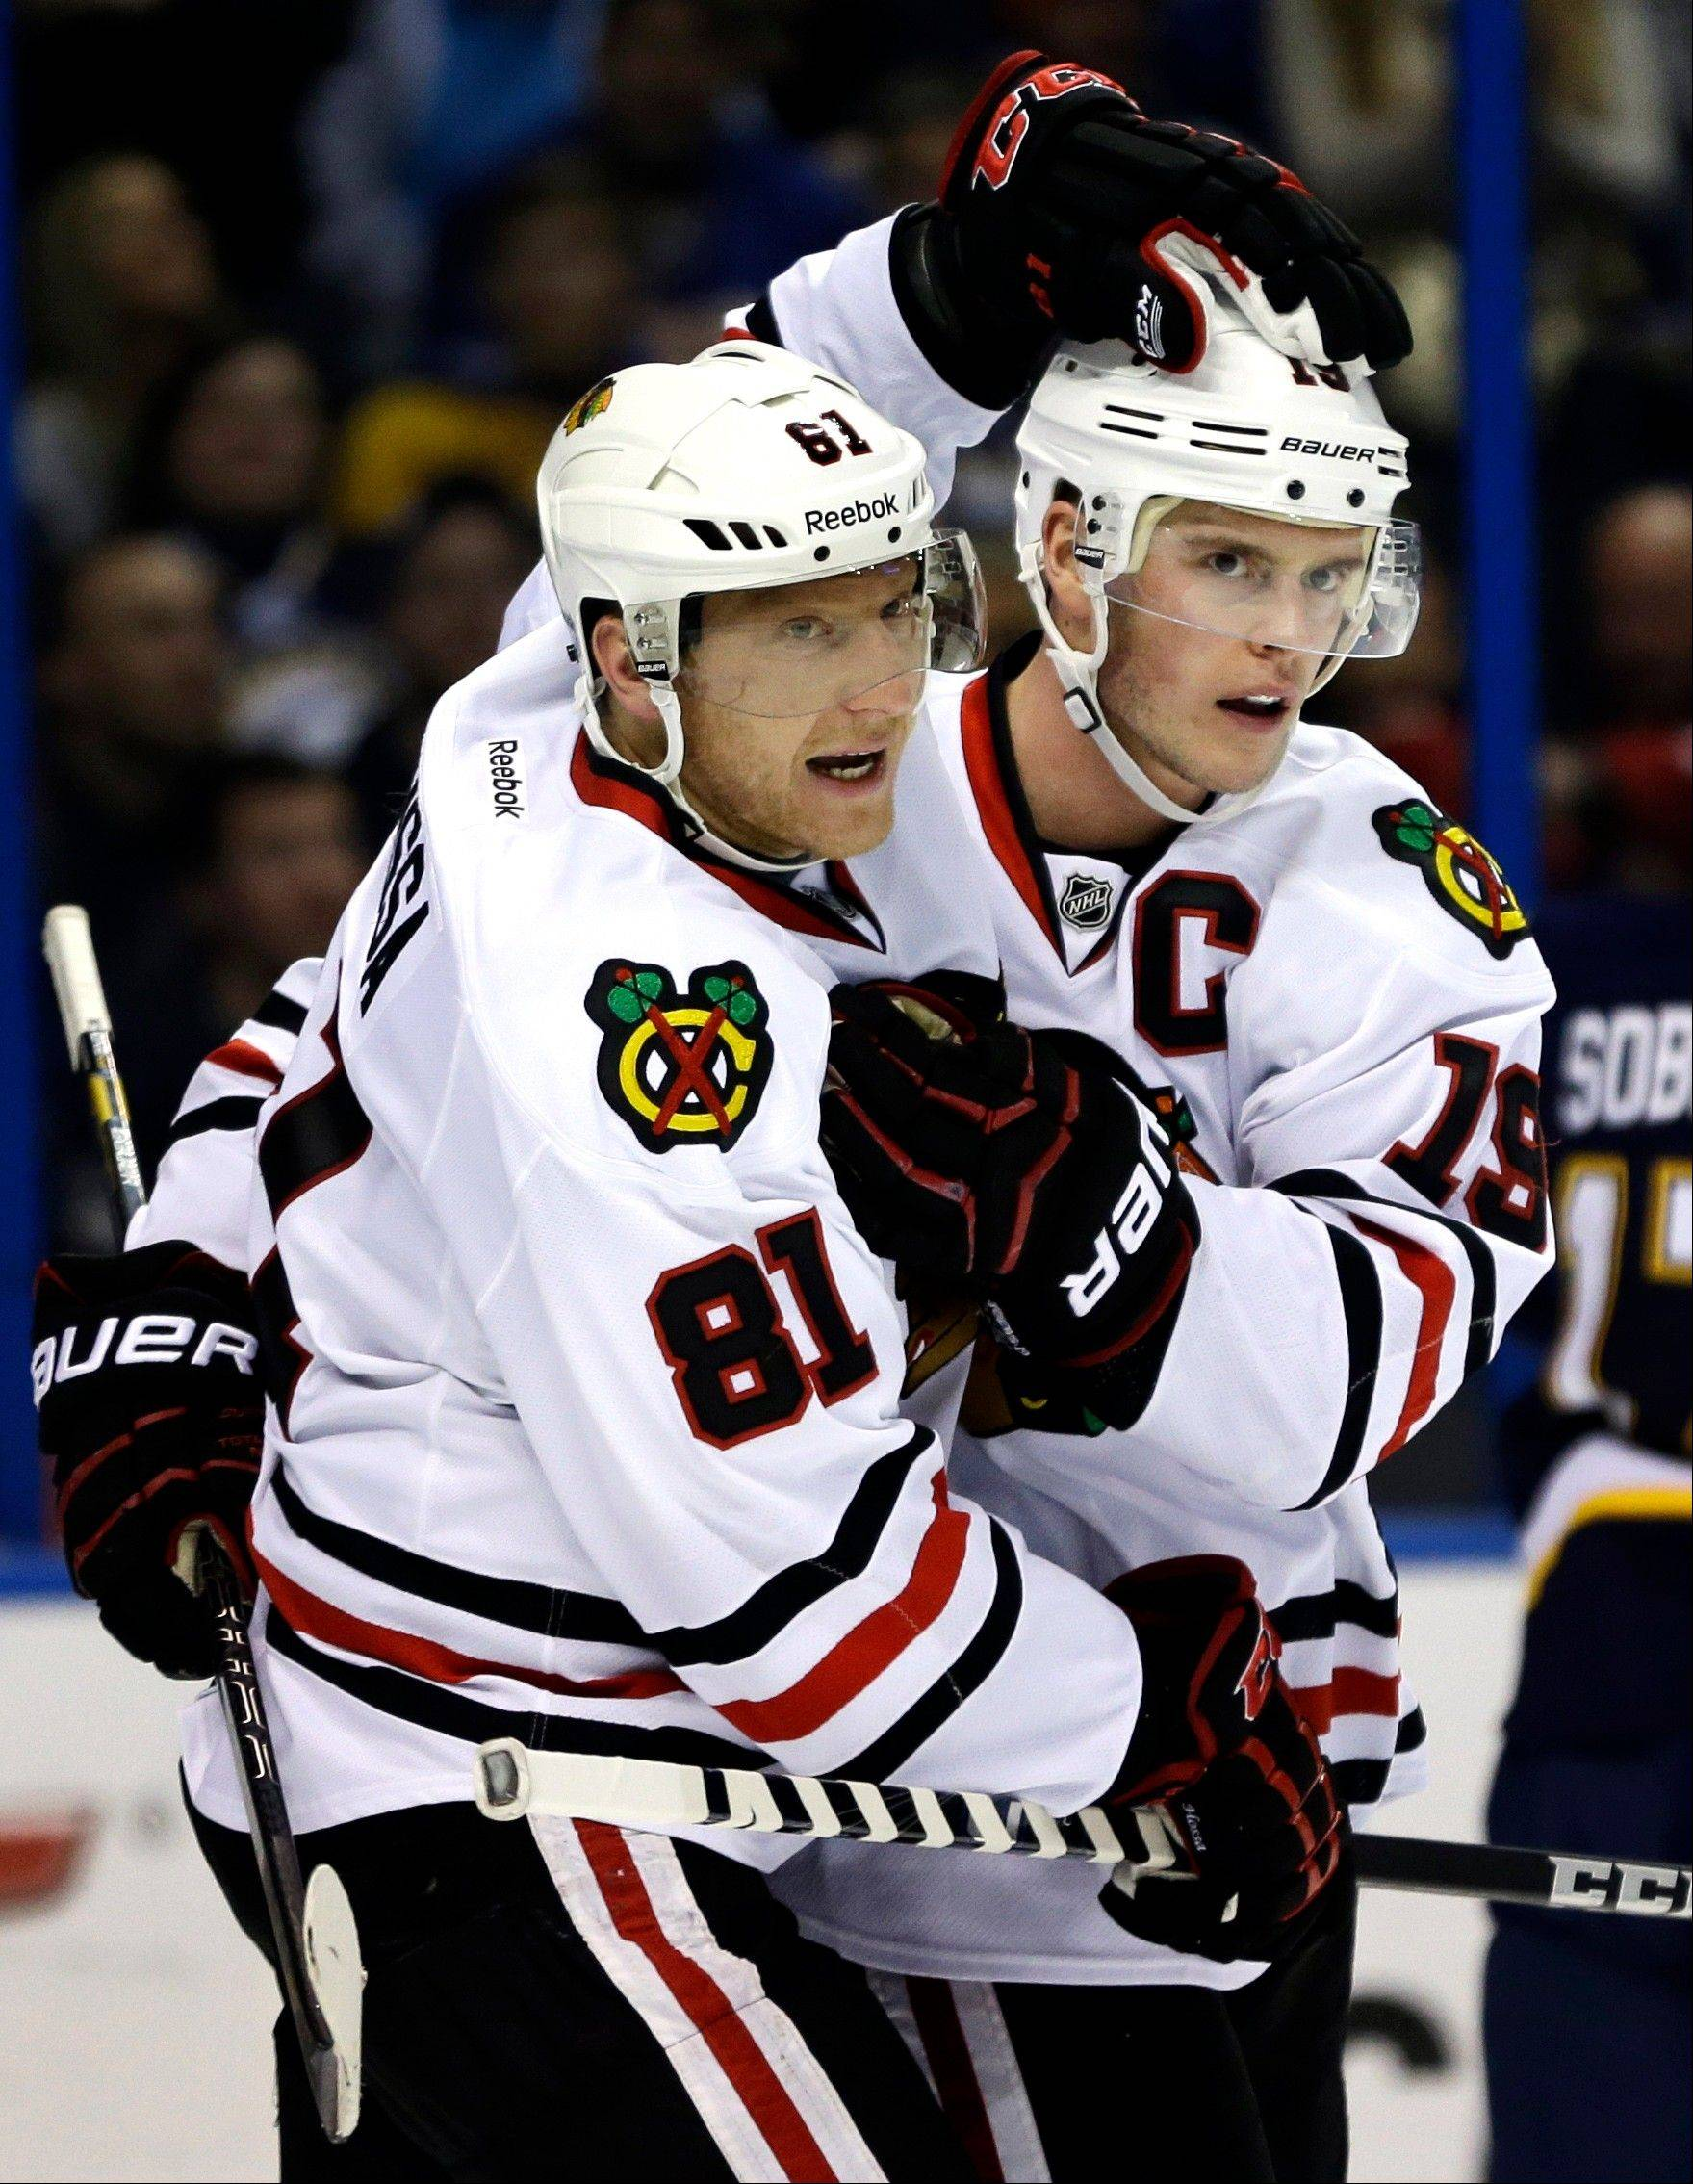 Chicago Blackhawks' Jonathan Toews, right, is congratulated by Marian Hossa, of Slovakia, after Toews scored his second goal of the night.